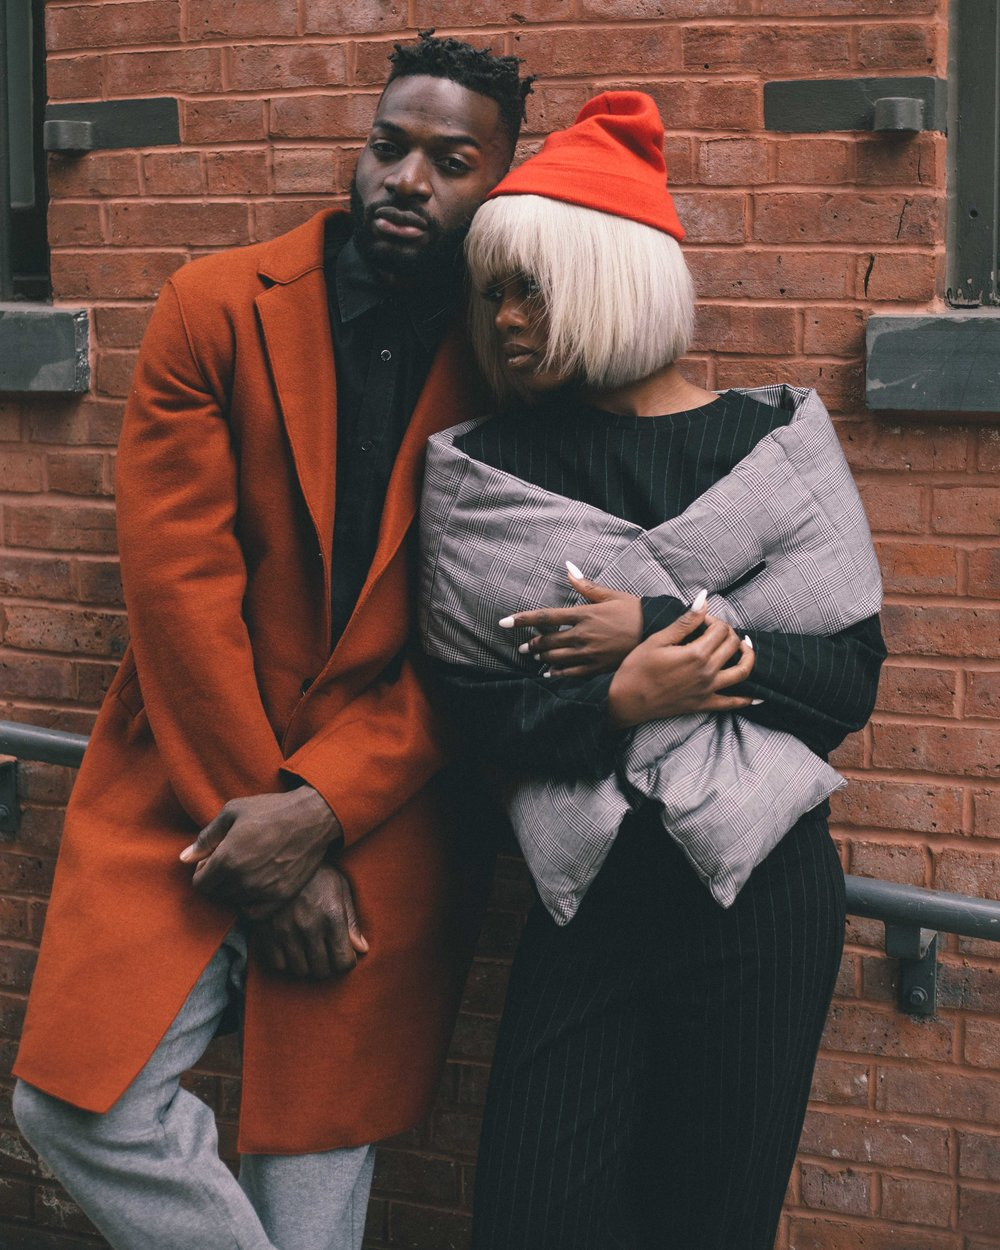 male model in orange jacket. female model in black pin suit. fashion photography captured by jarrod anderson in new york city